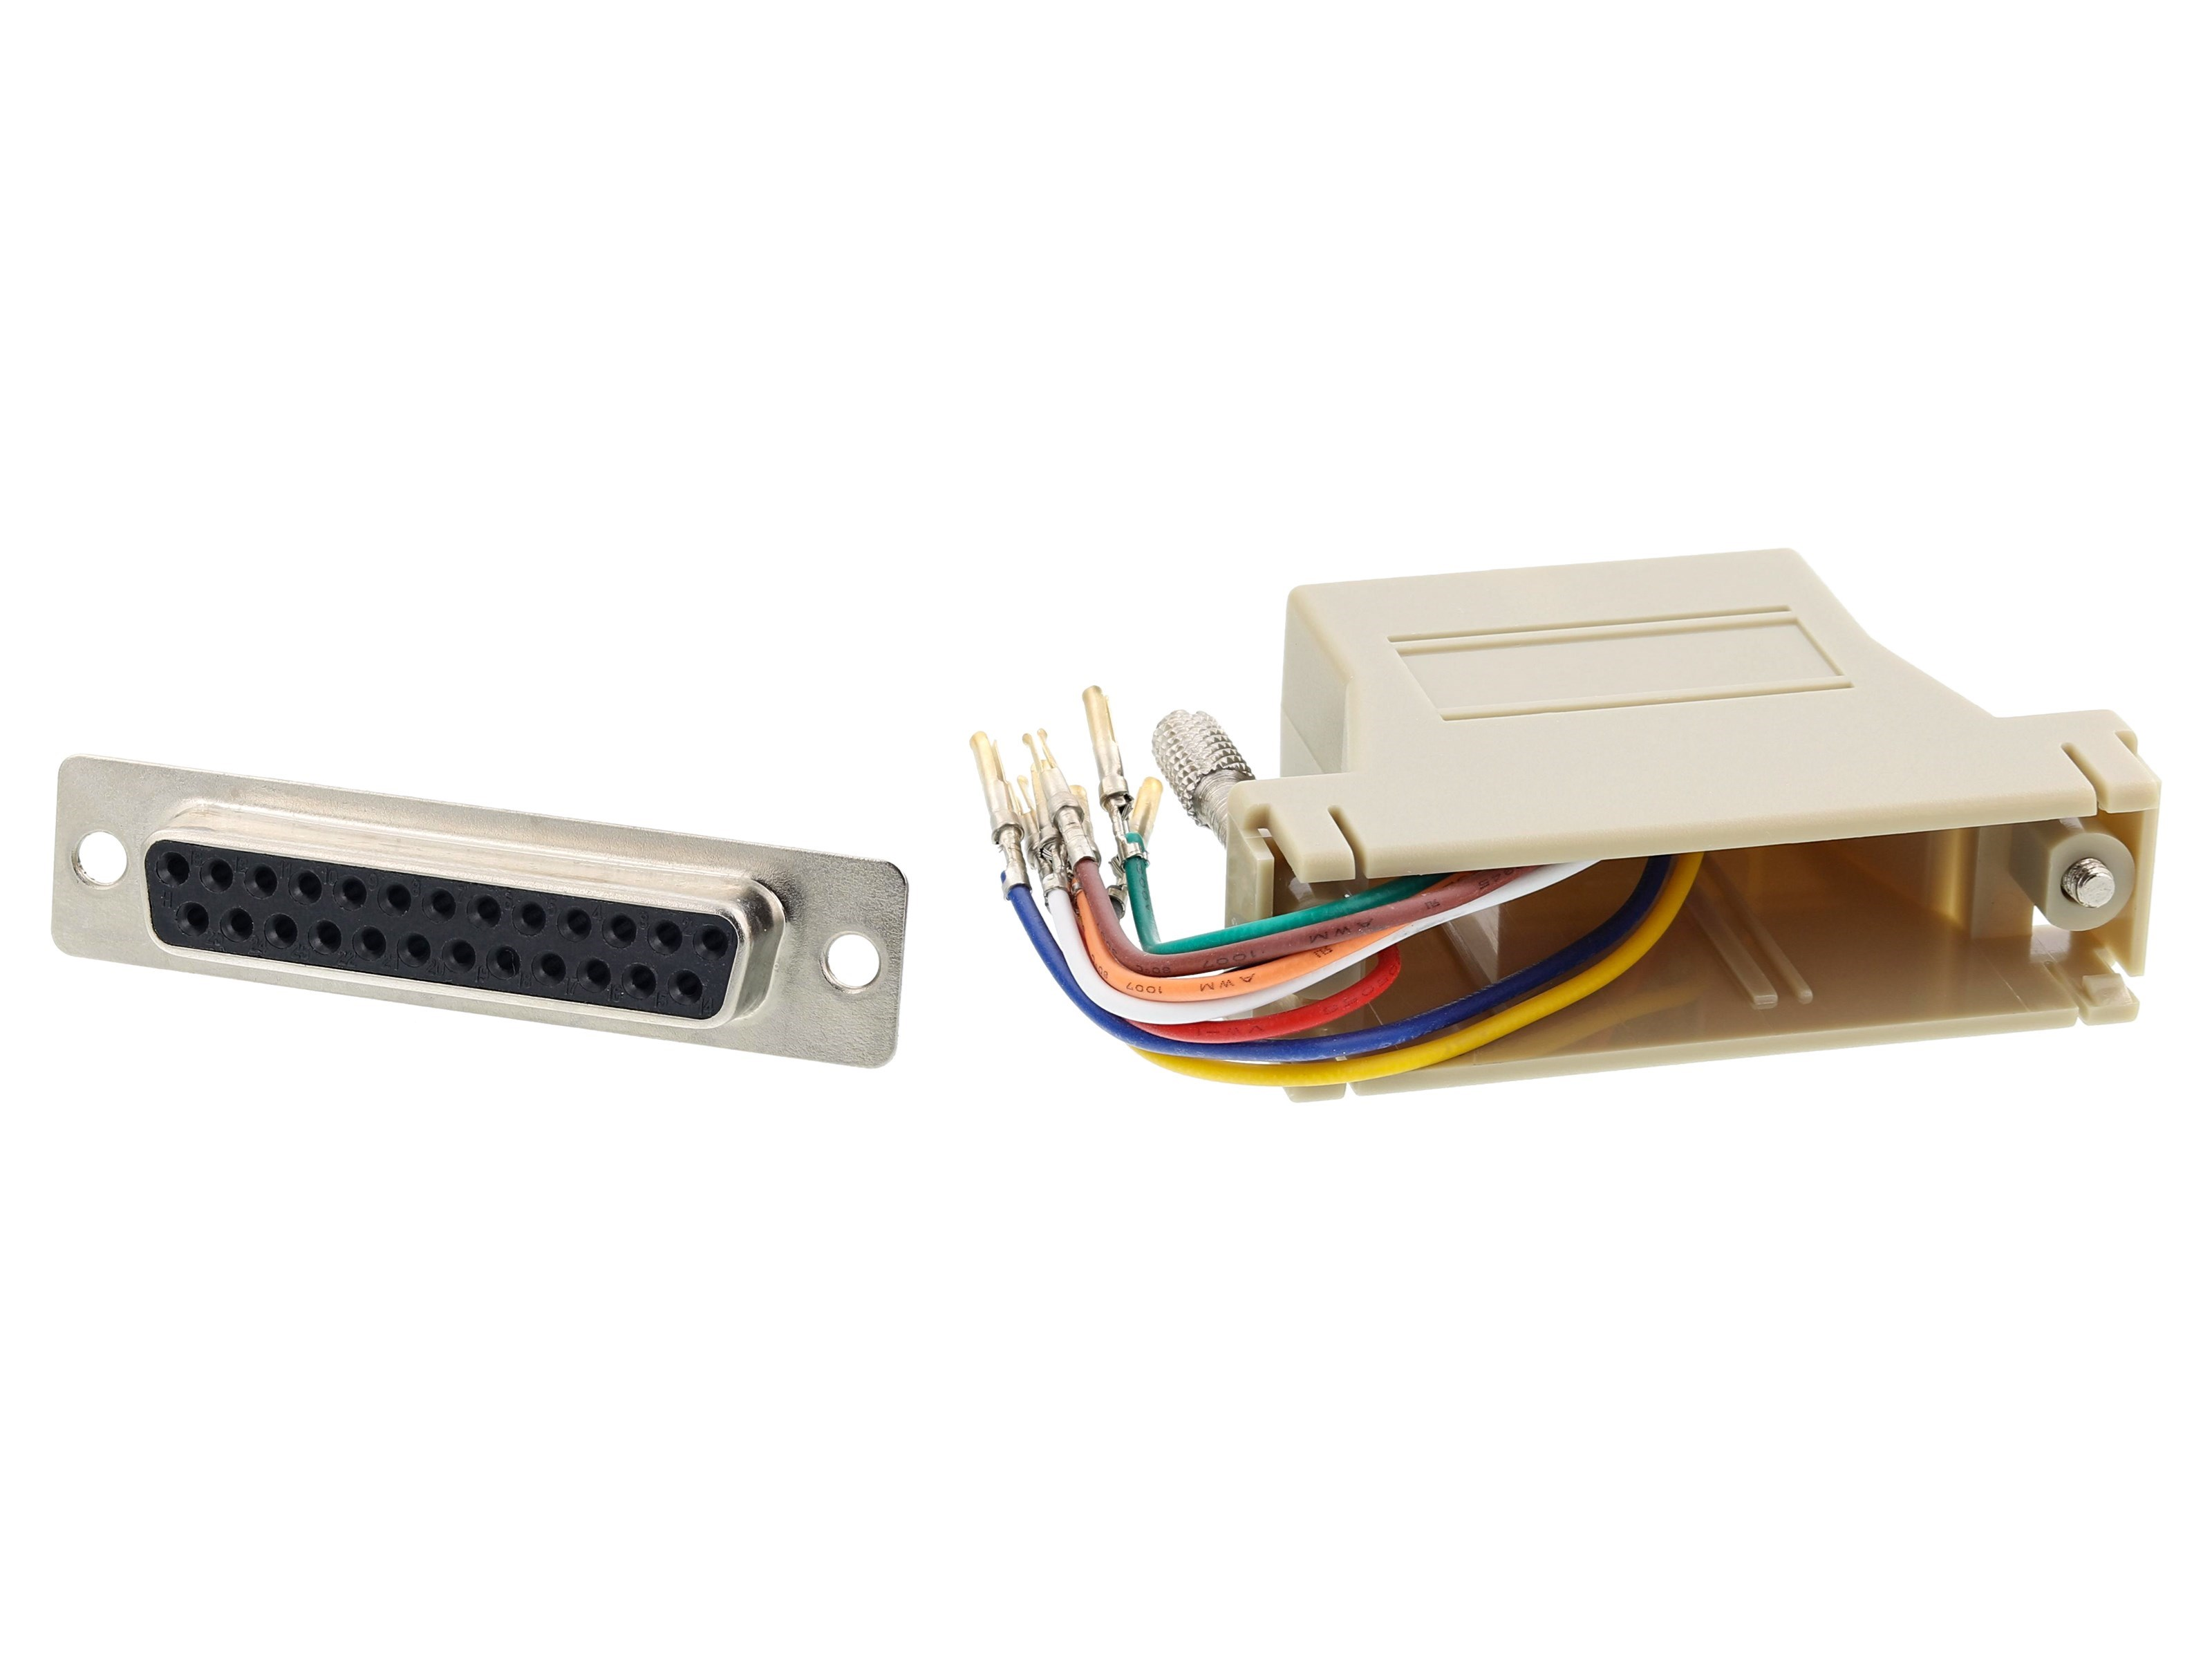 Networking RJ45 8P8C To DB25 Female Adapter